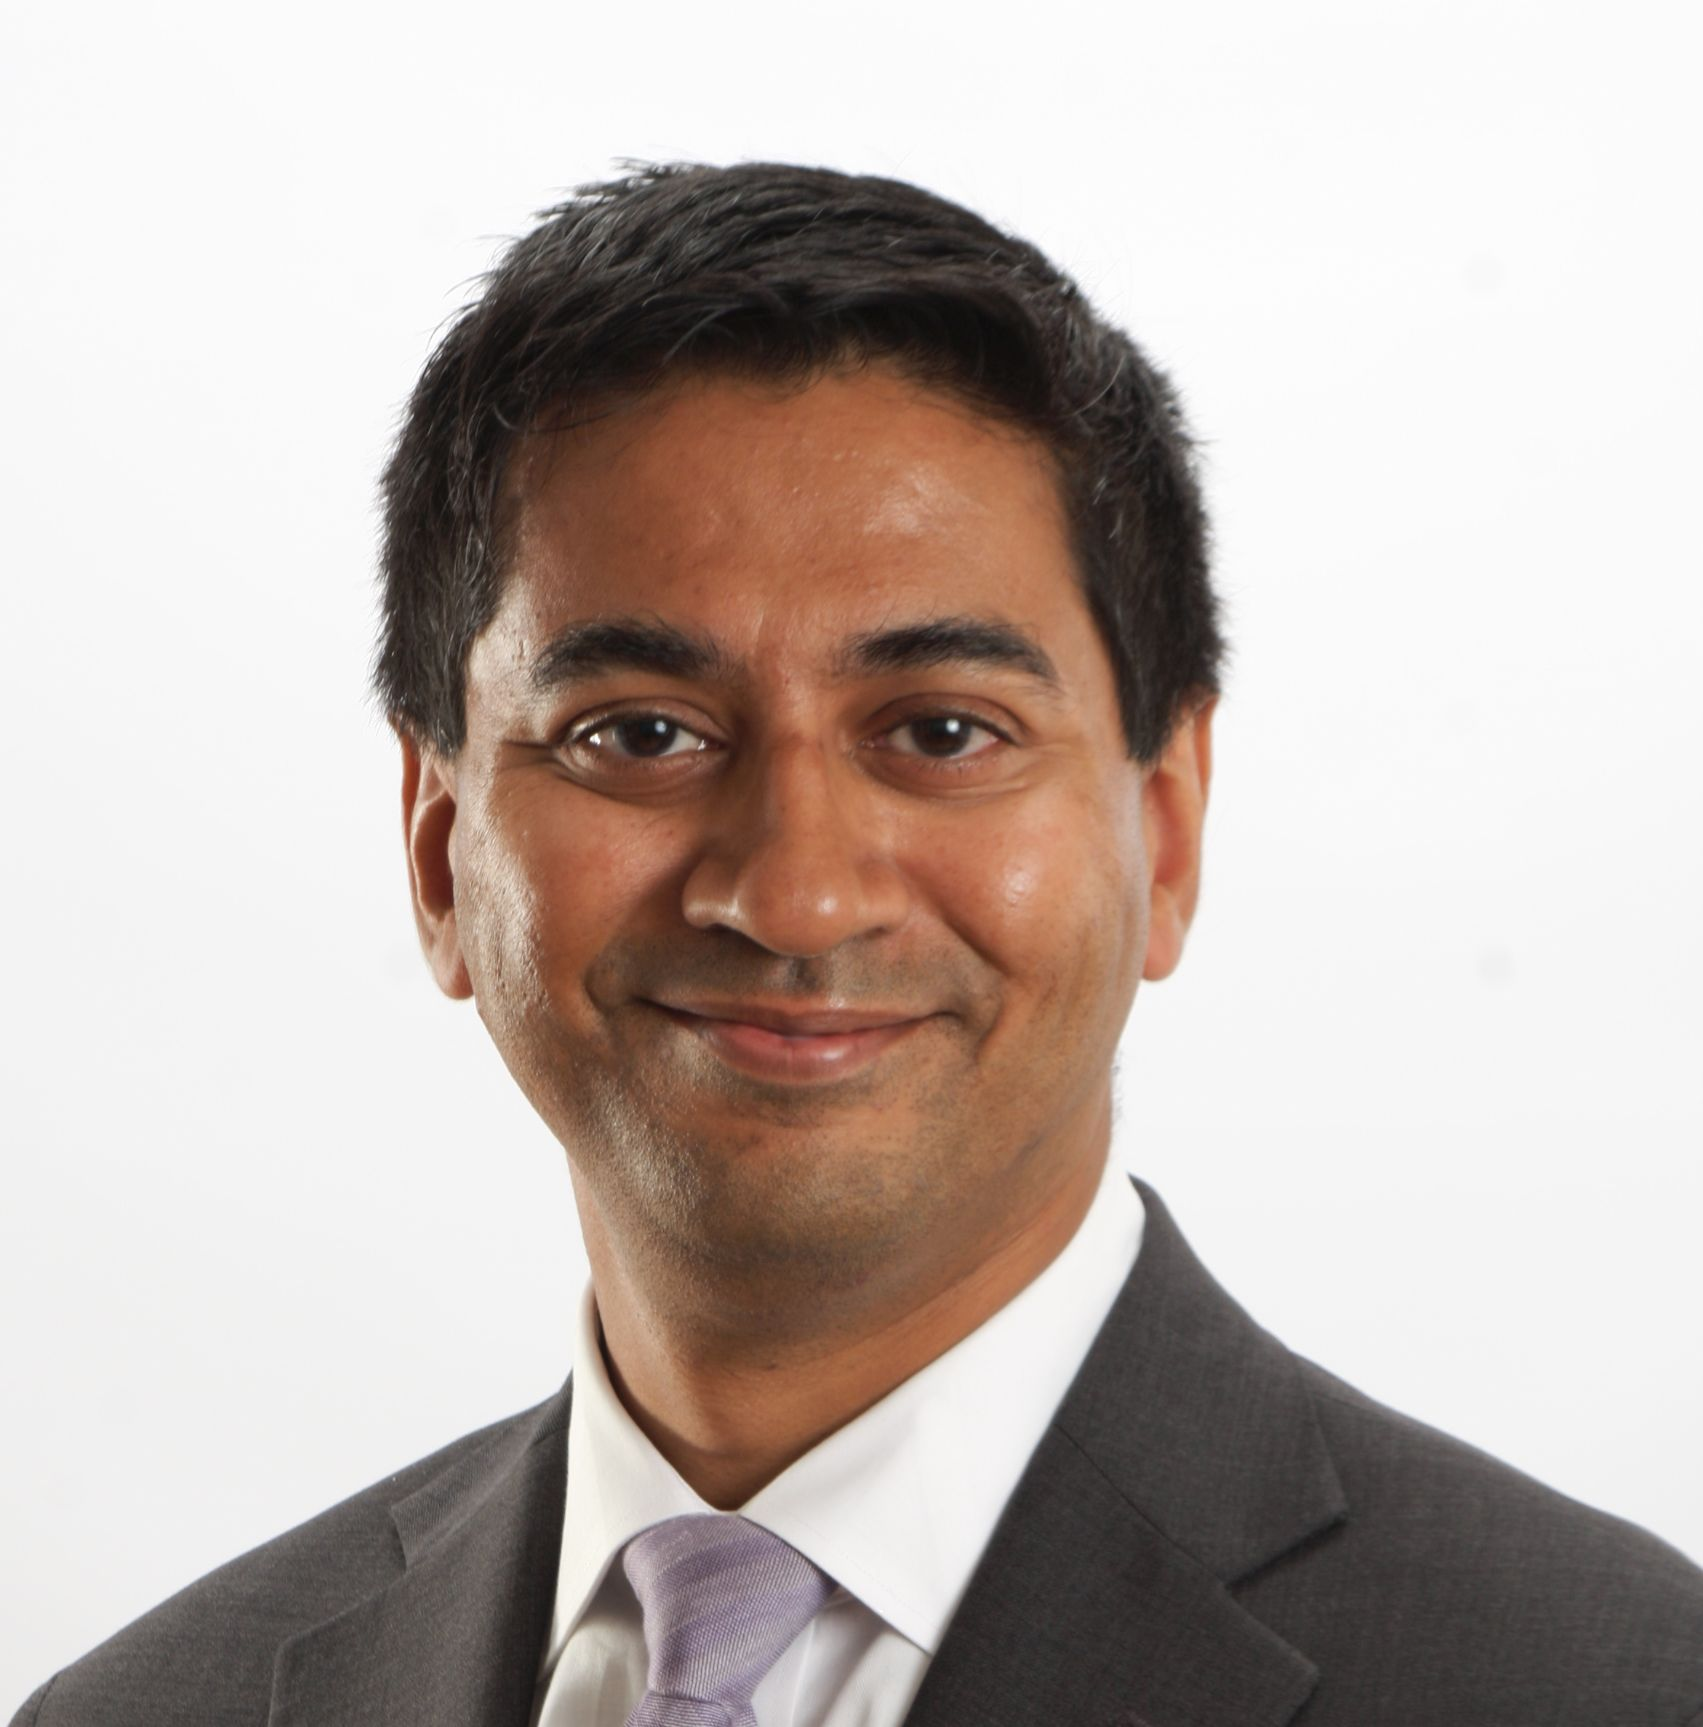 Vikas N  O'Reilly-Shah, MD, PhD